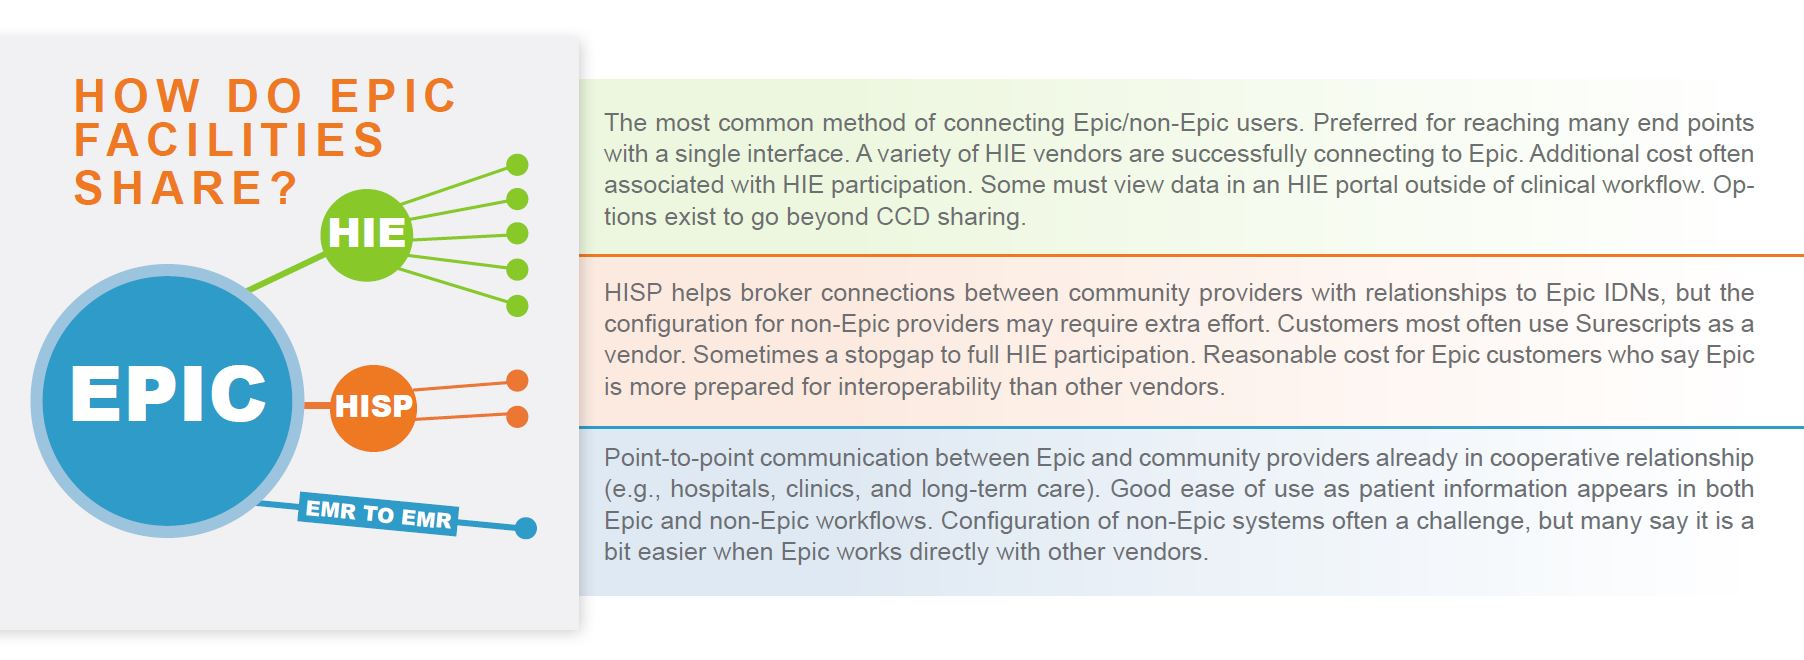 how do epic facilities share